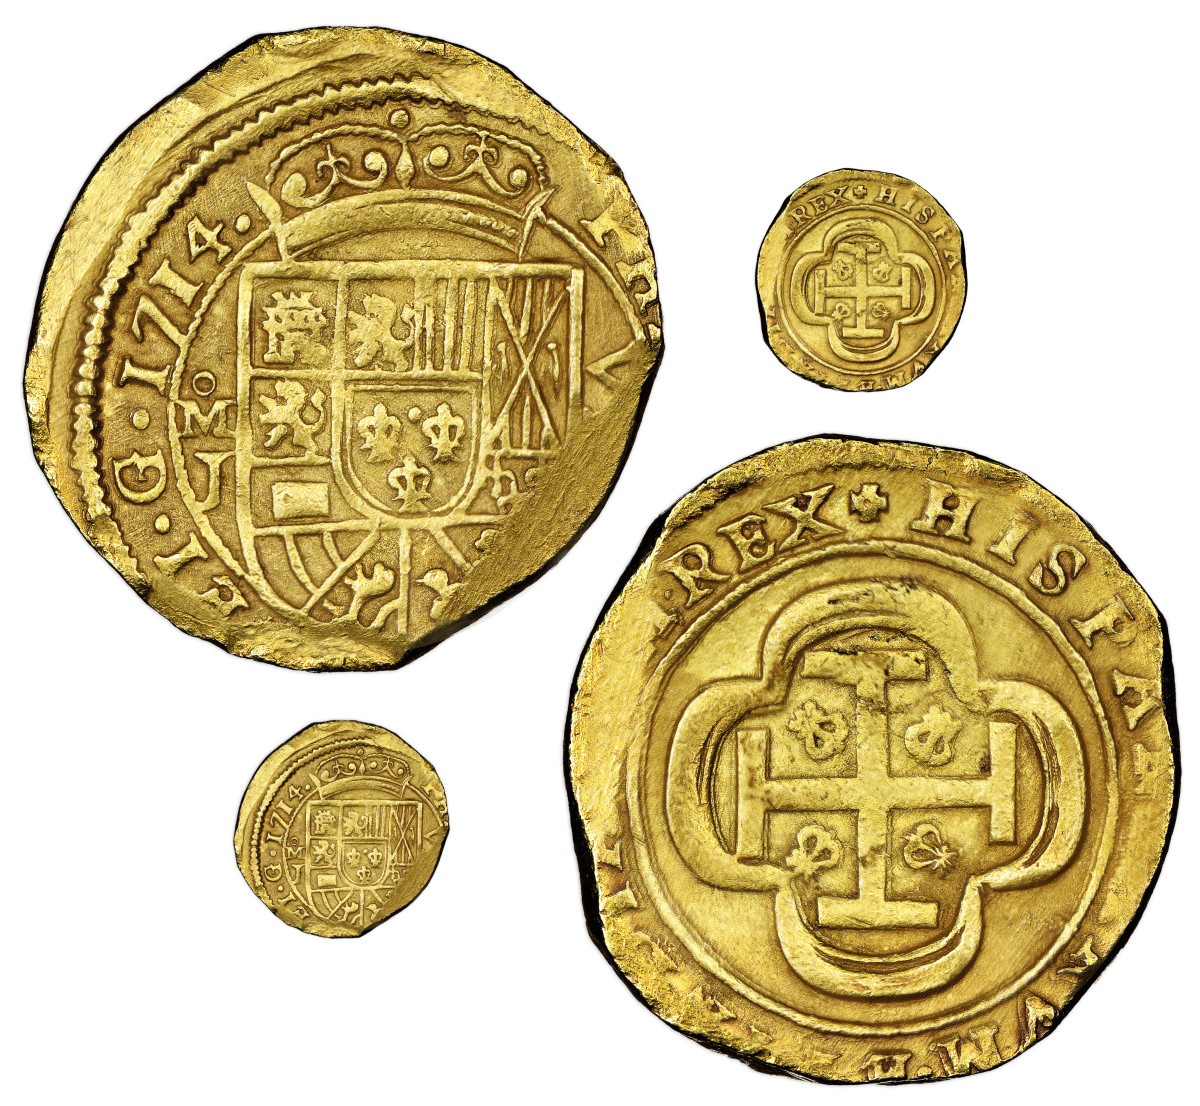 A gold cob 8 escudos dated 1714 with assayer's initial J was previously used as a showpiece for the Real Eight Company's finds and pictured in a 1965 National Geographic article.